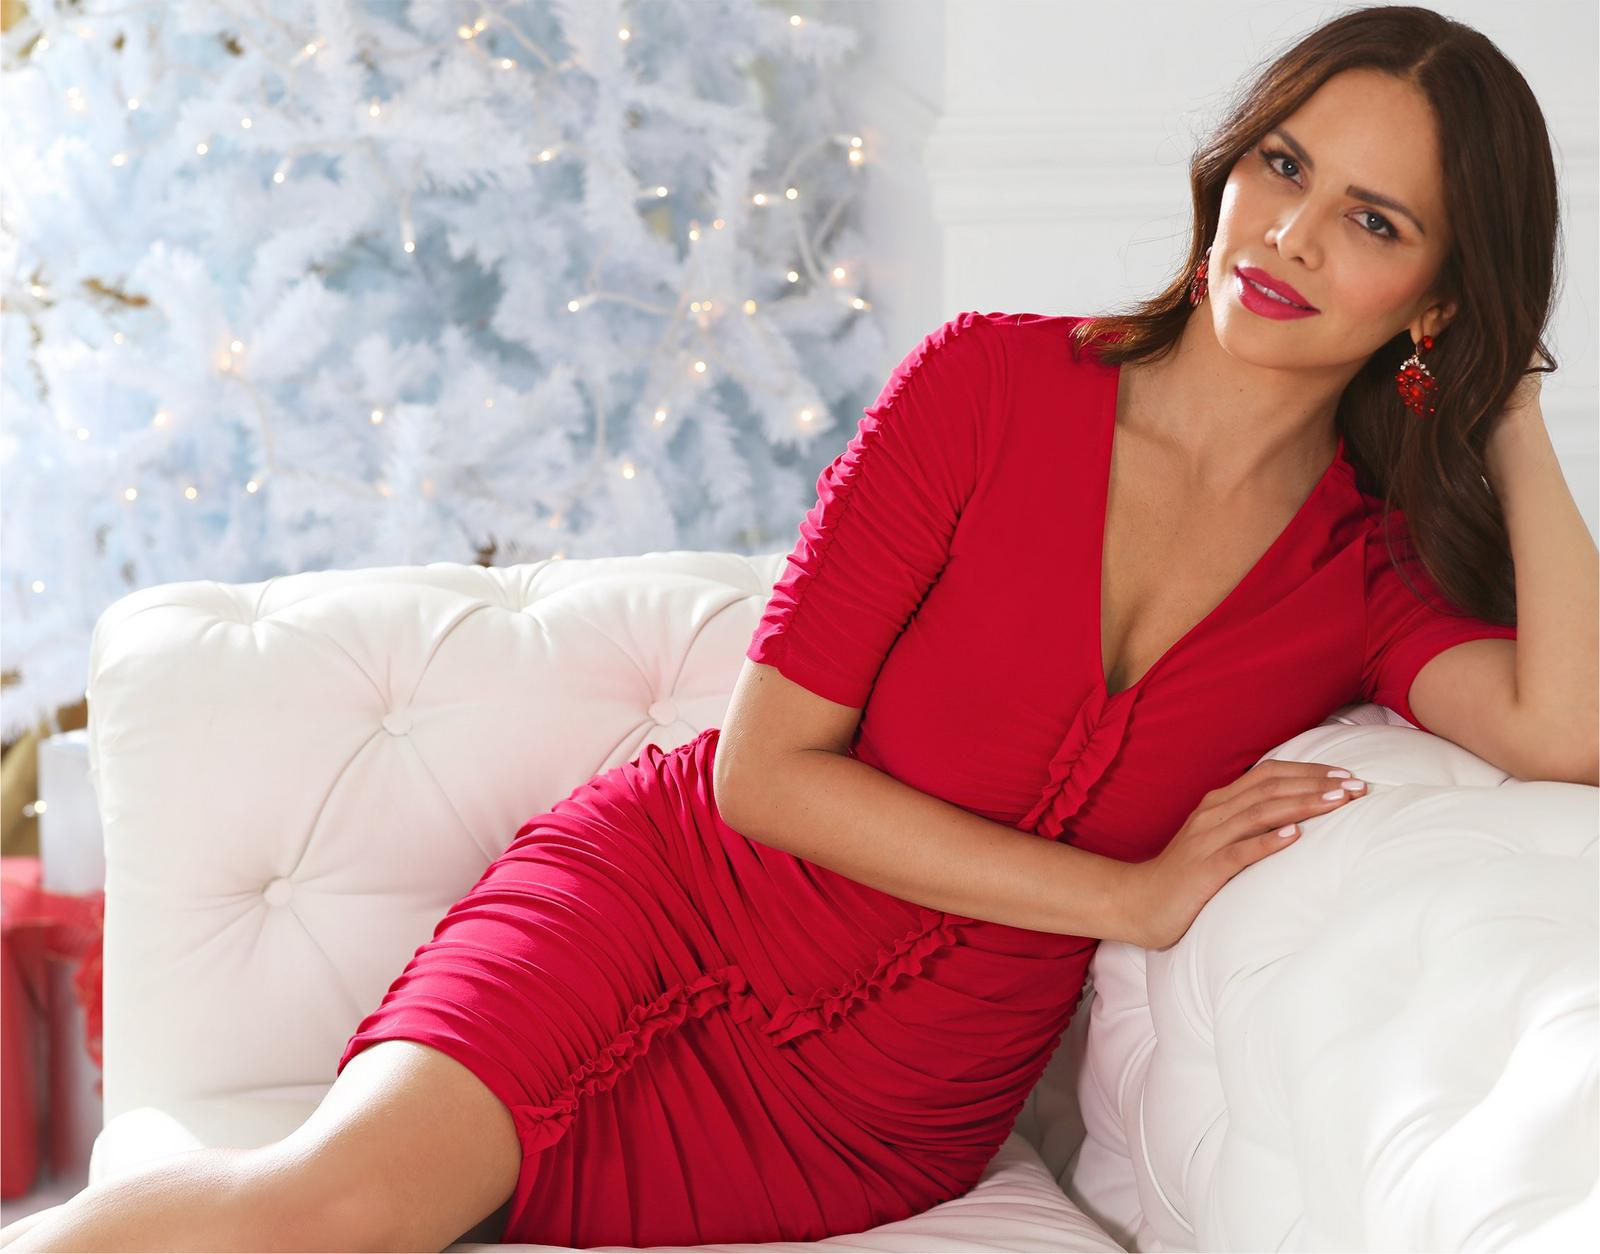 model laying on white couch with white christmas tree in background wearing a red ruched dress and red earrings.